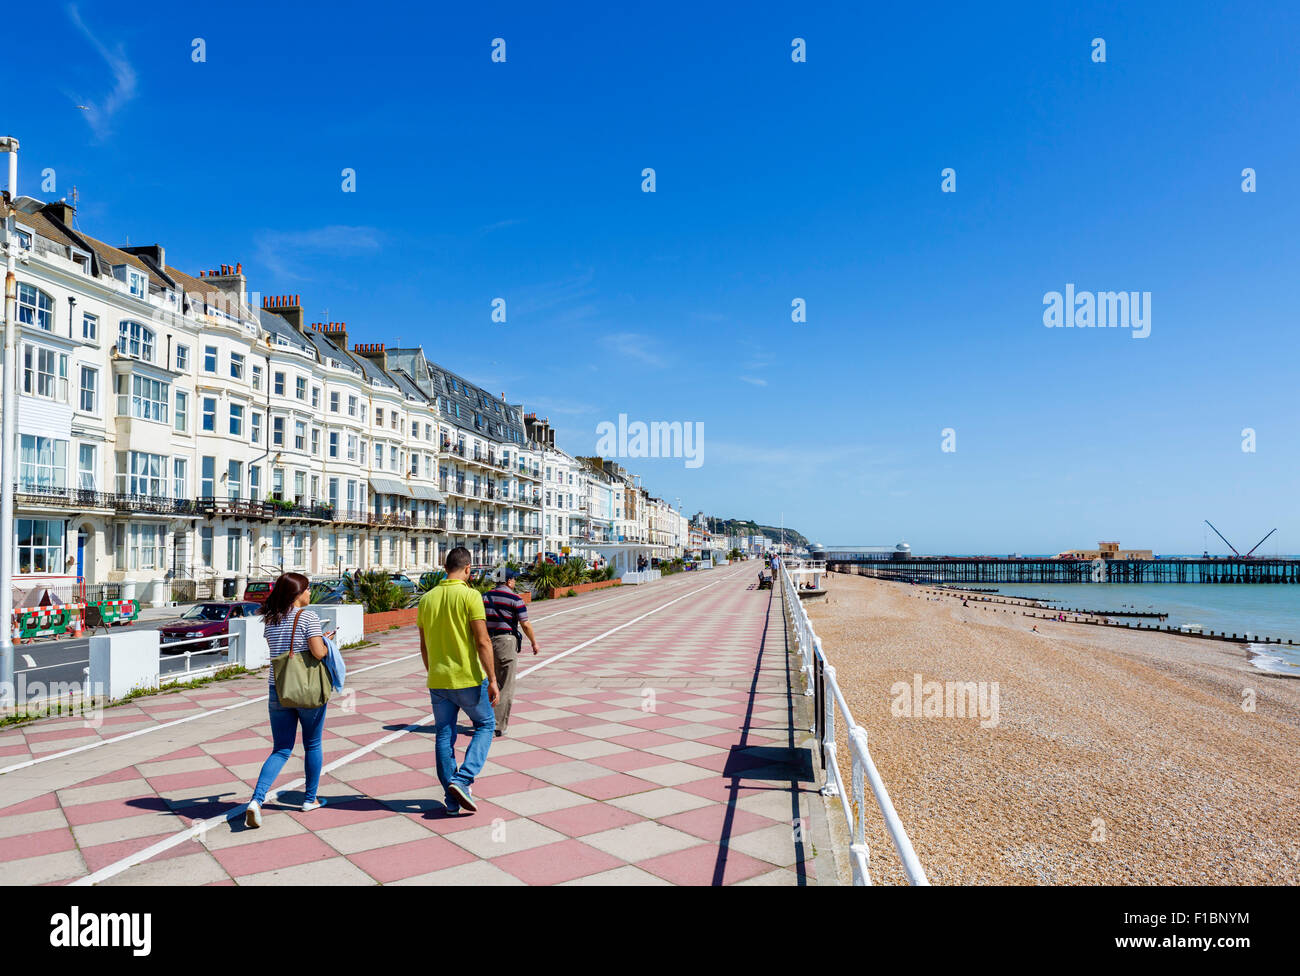 The seafront promenade and beach with the burnt out pier in the distance, Hastings, East Sussex England, UK - Stock Image